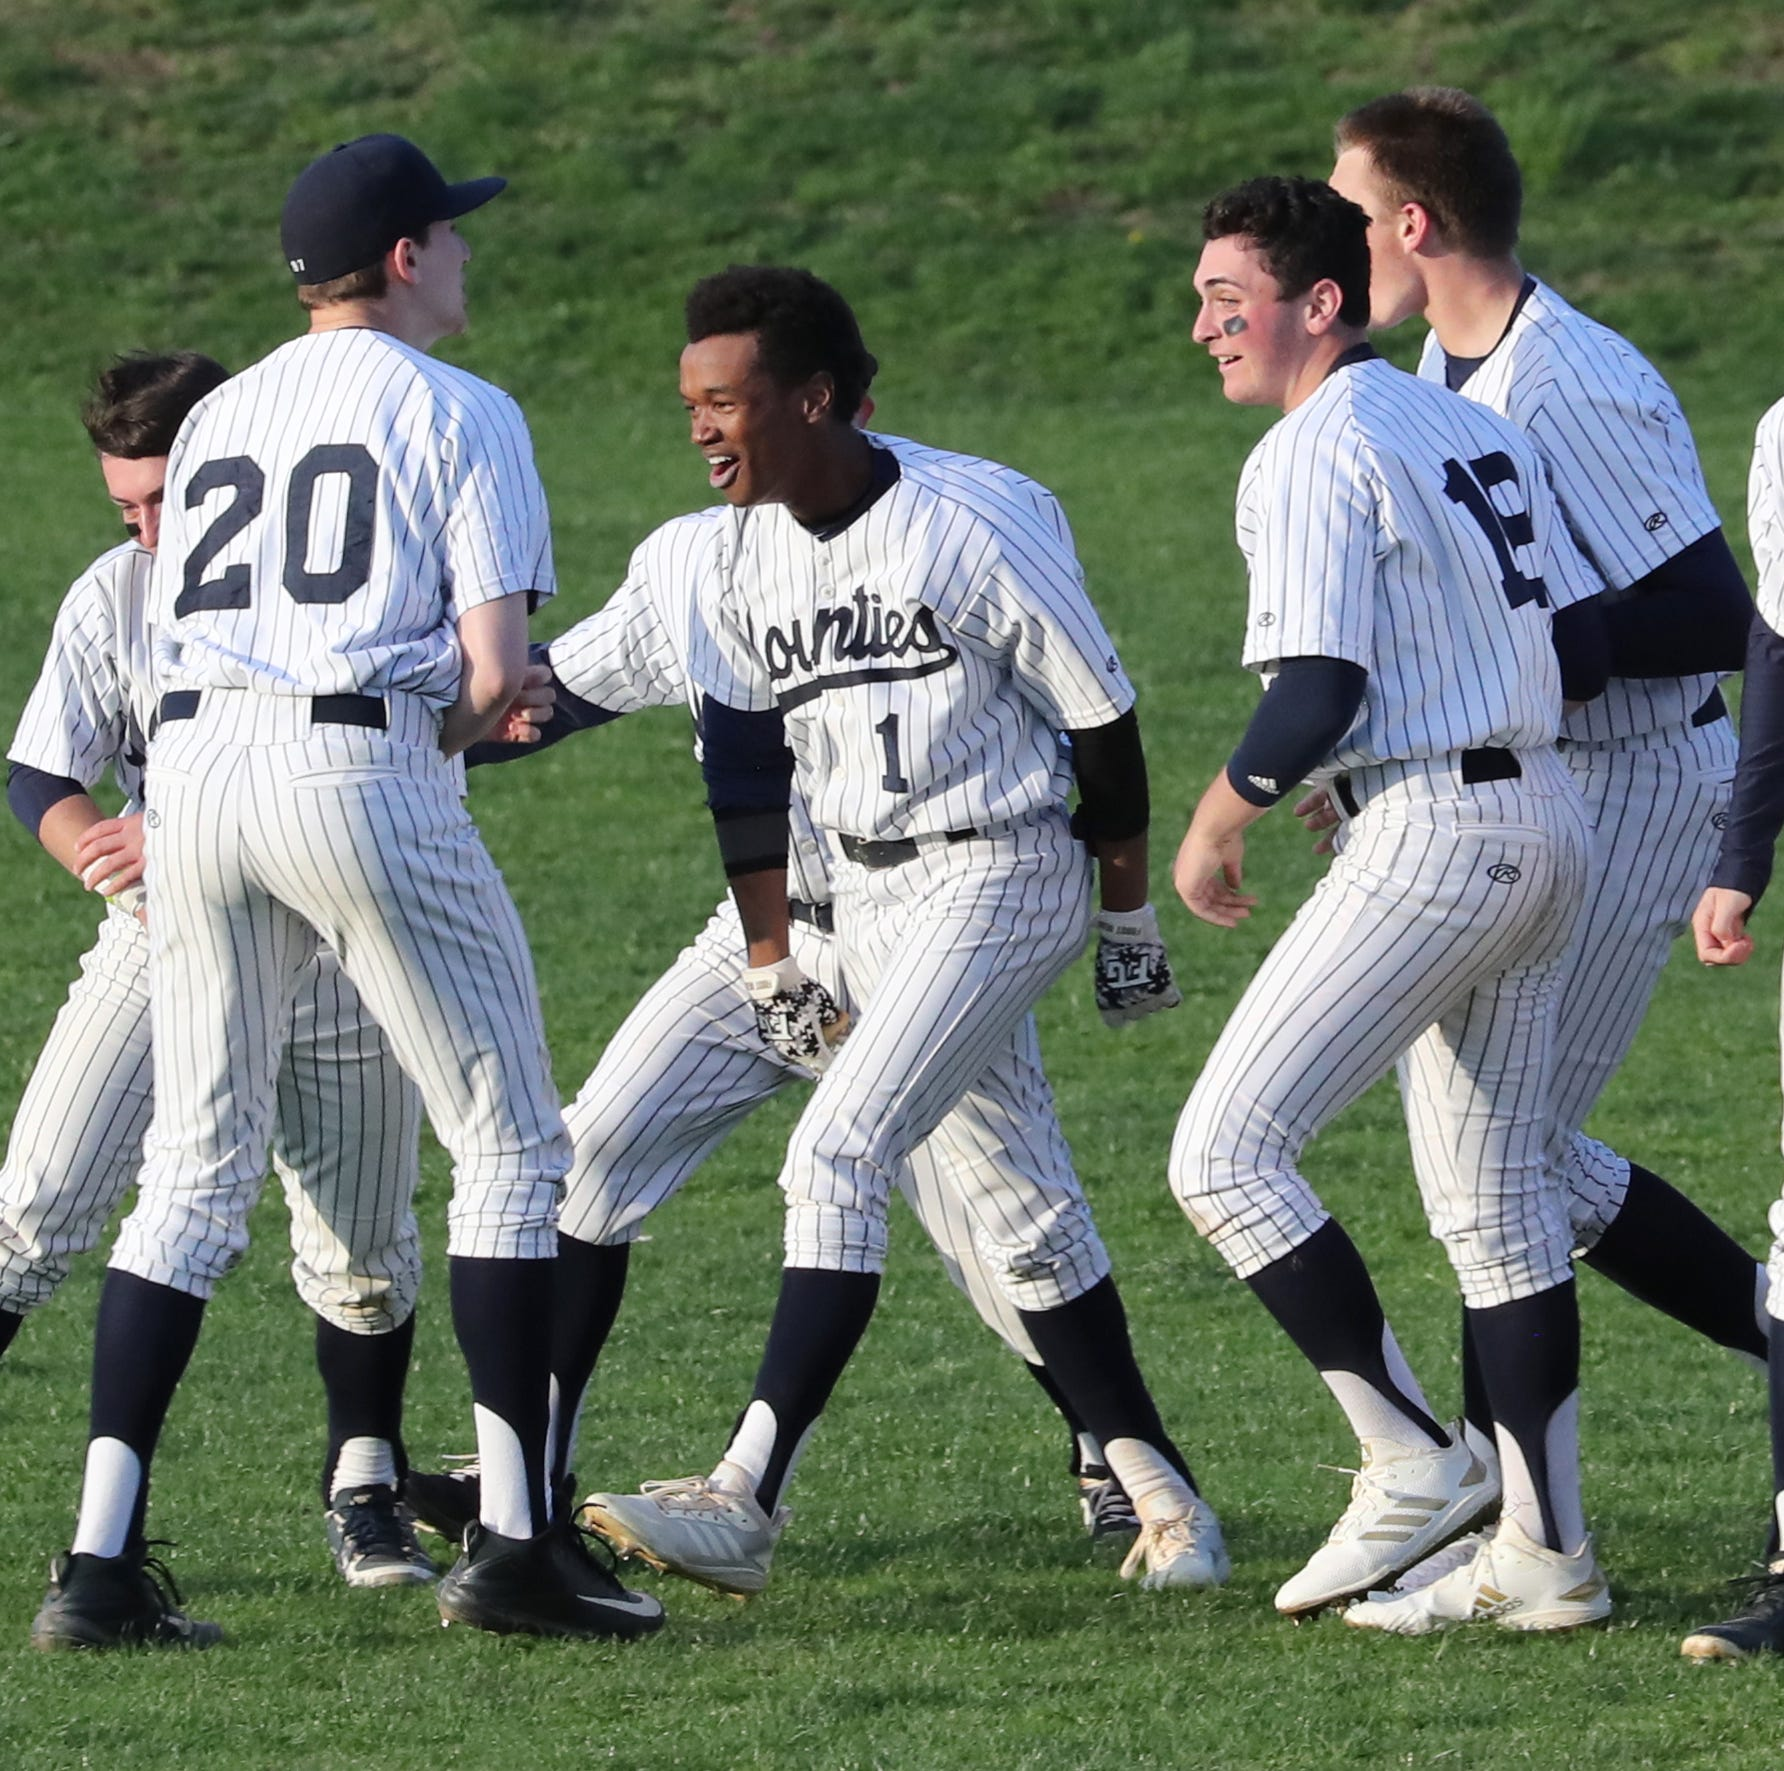 Baseball: Dodson's clutch hit backs up Scanlon's strong pitching to keep Suffern unbeaten